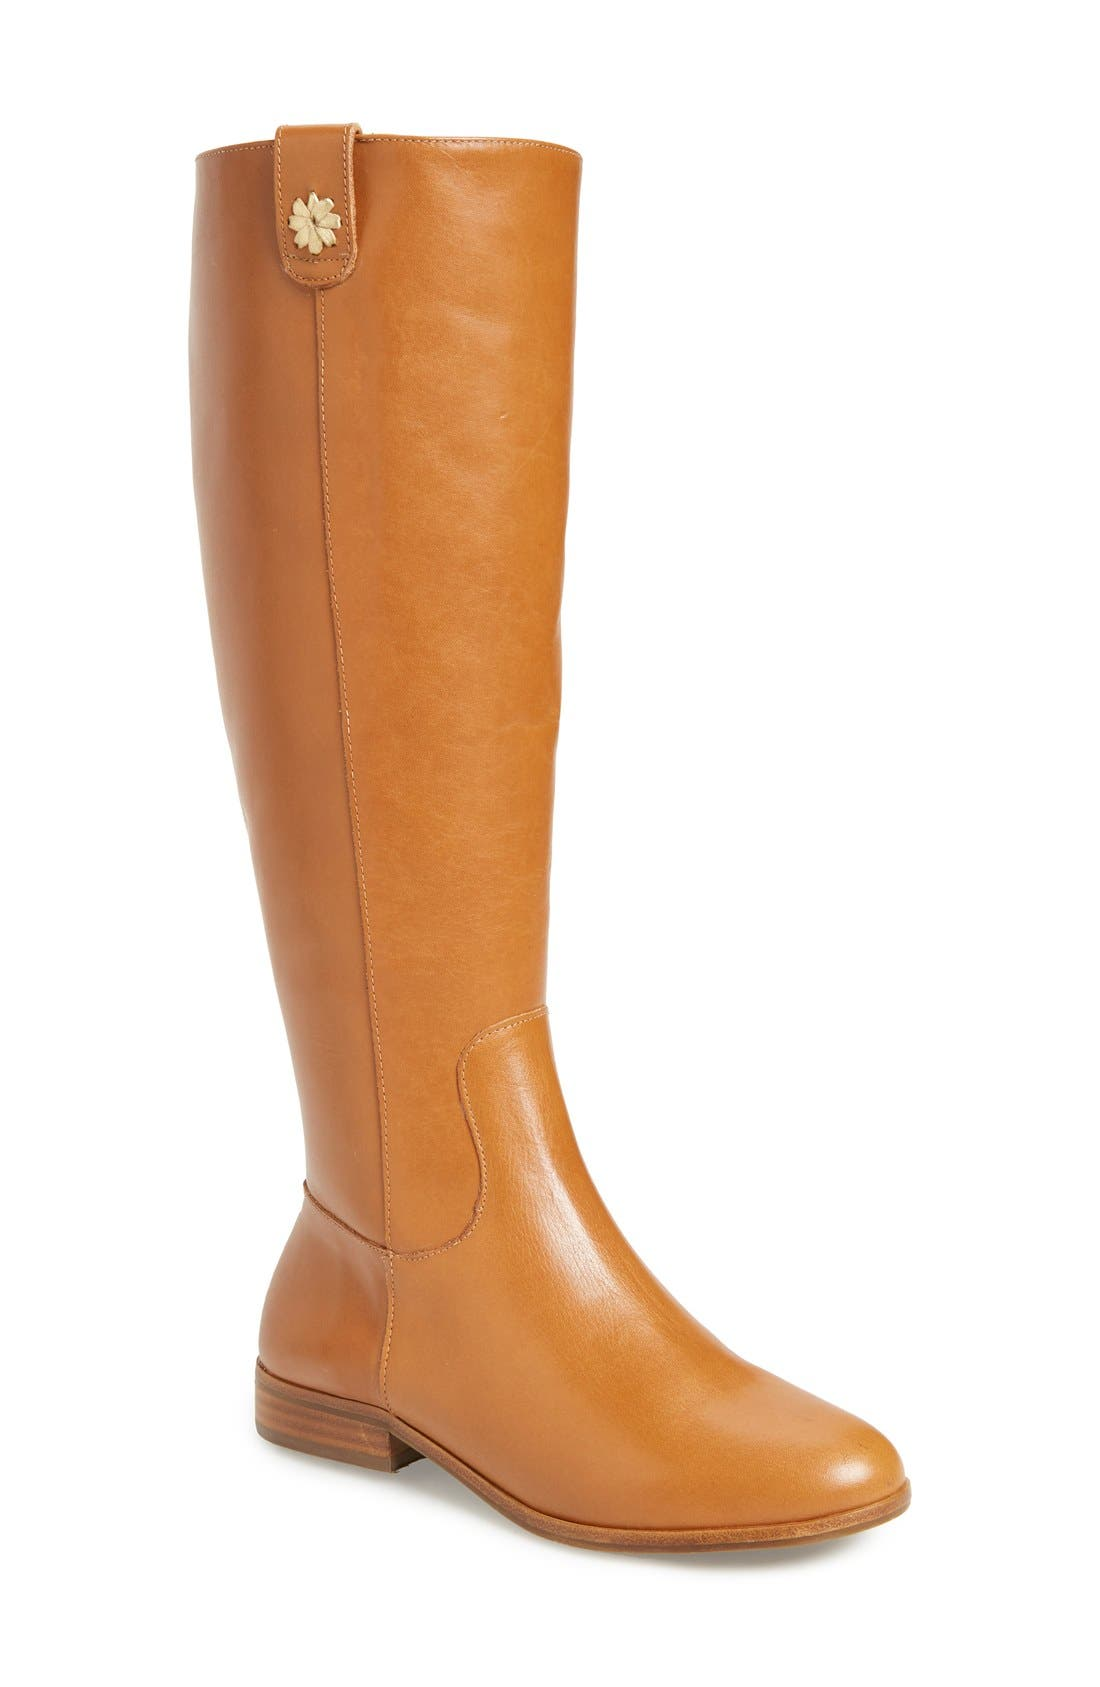 Alternate Image 1 Selected - Jack Rogers Parker Tall Boot (Women)